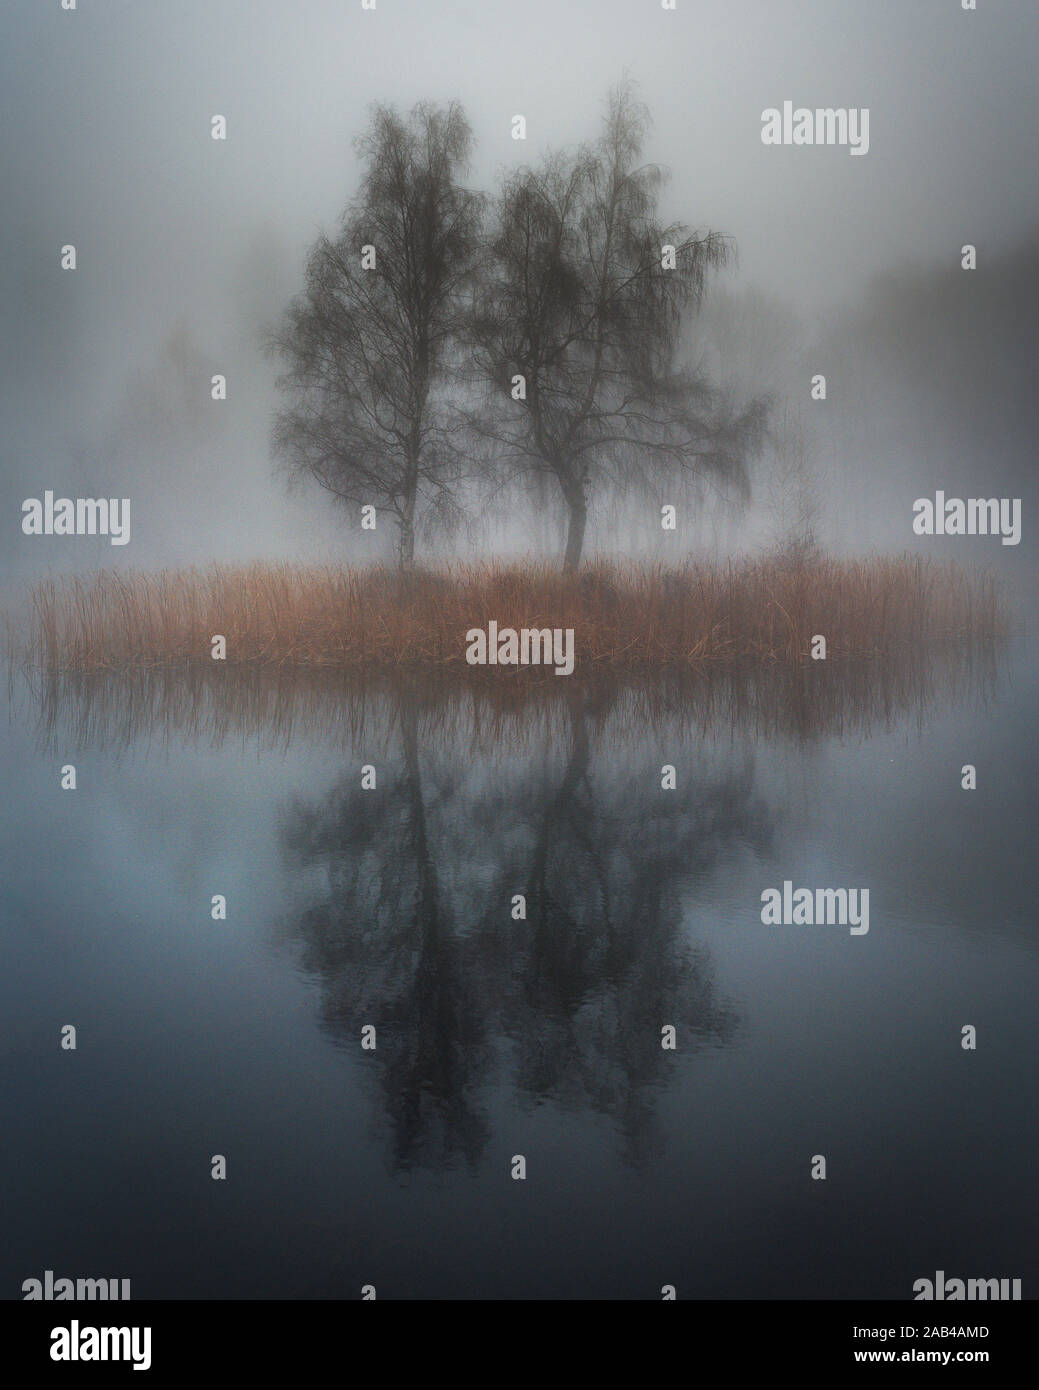 Moody lake in the fog. Lonely Island with trees in mist. Stock Photo